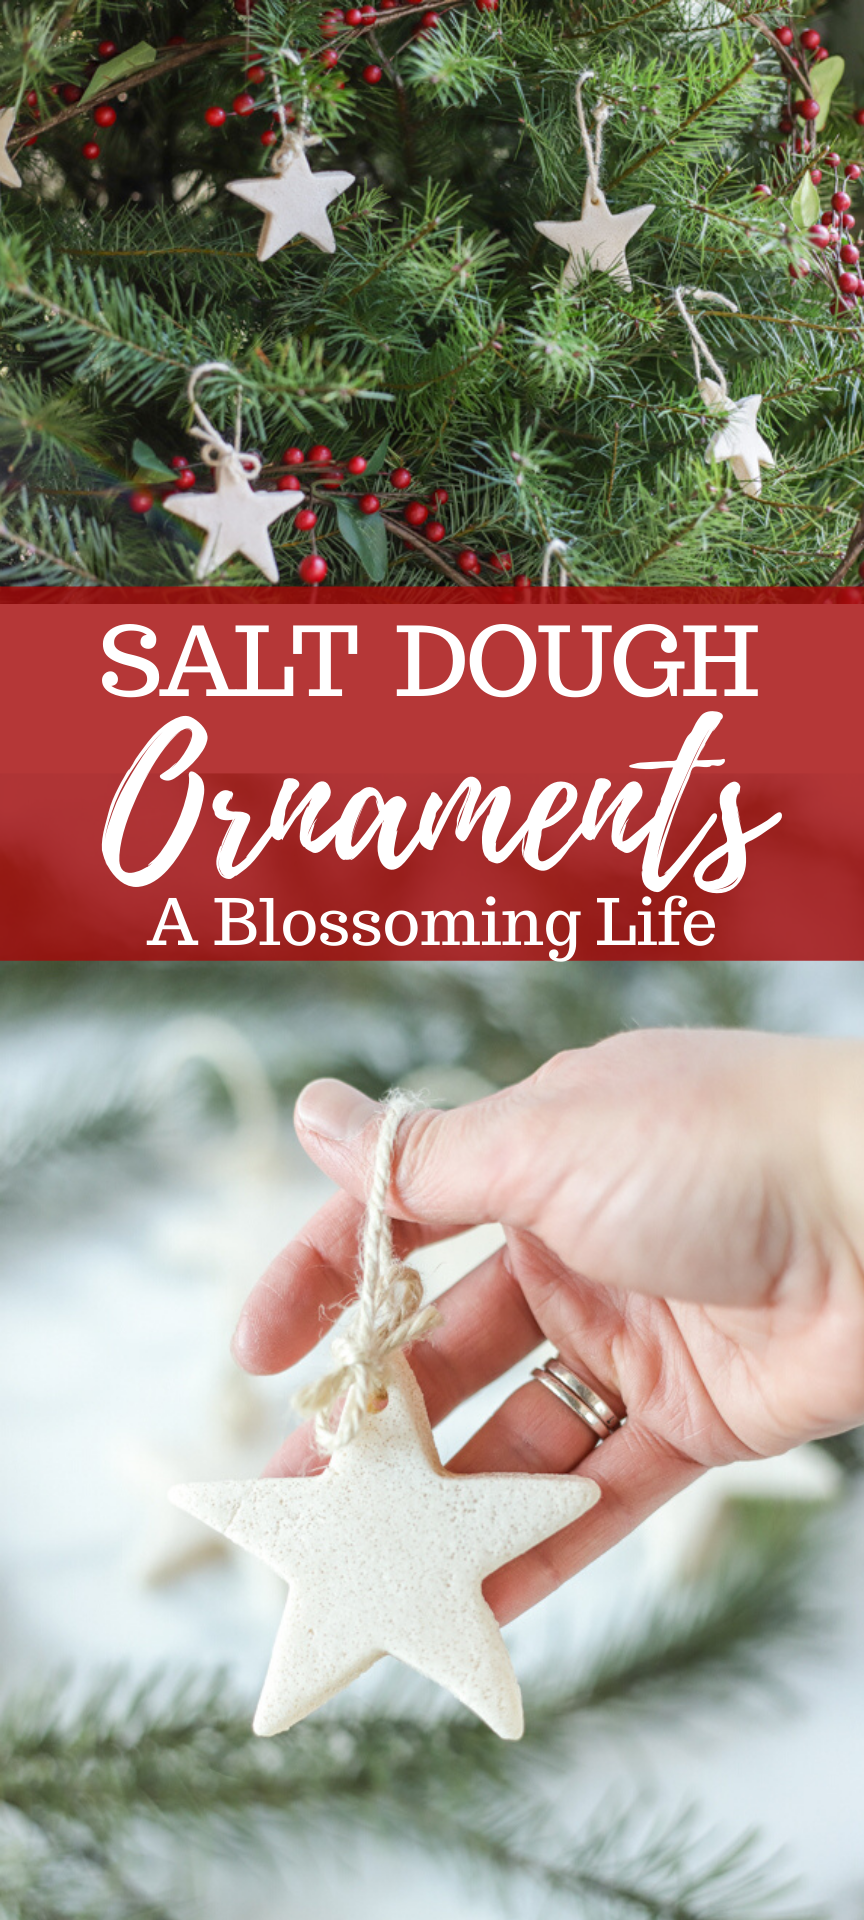 This Simple Recipe For Homemade Salt Dough Ornaments Makes For Beautiful Homemade Christmas Ornaments Diy Diy Christmas Tree Ornaments Kids Christmas Ornaments